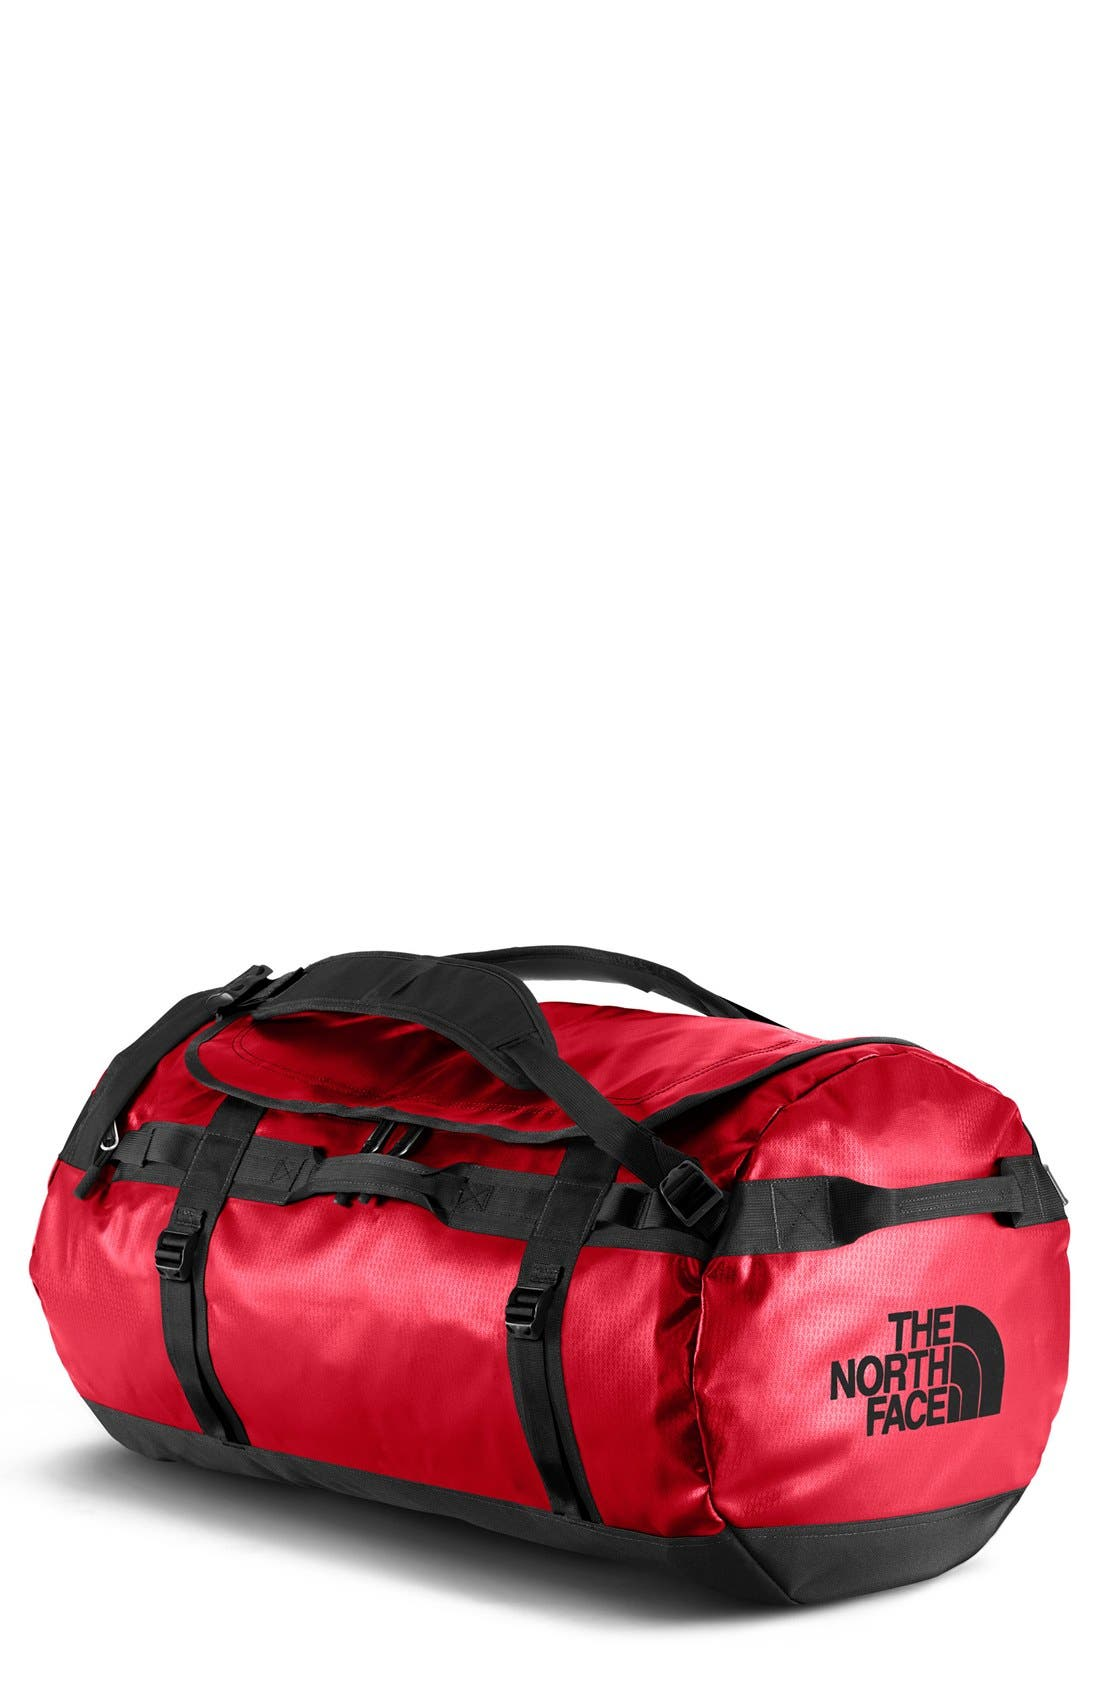 Alternate Image 1 Selected - The North Face 'Base Camp - Large' Duffel Bag